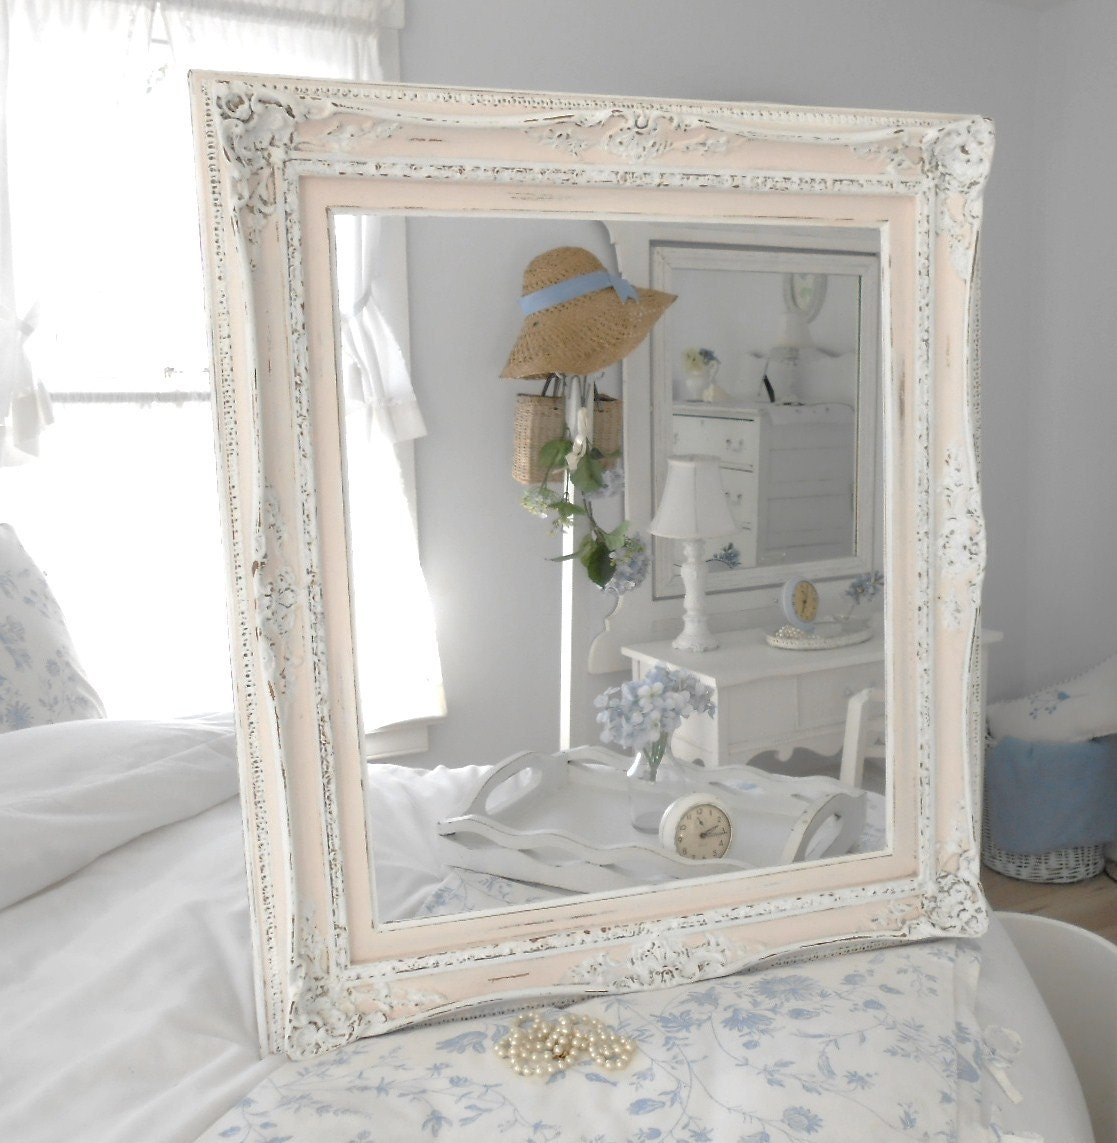 Frame shabby chic furniture home decor for mirror or art for Home decorating mirrors